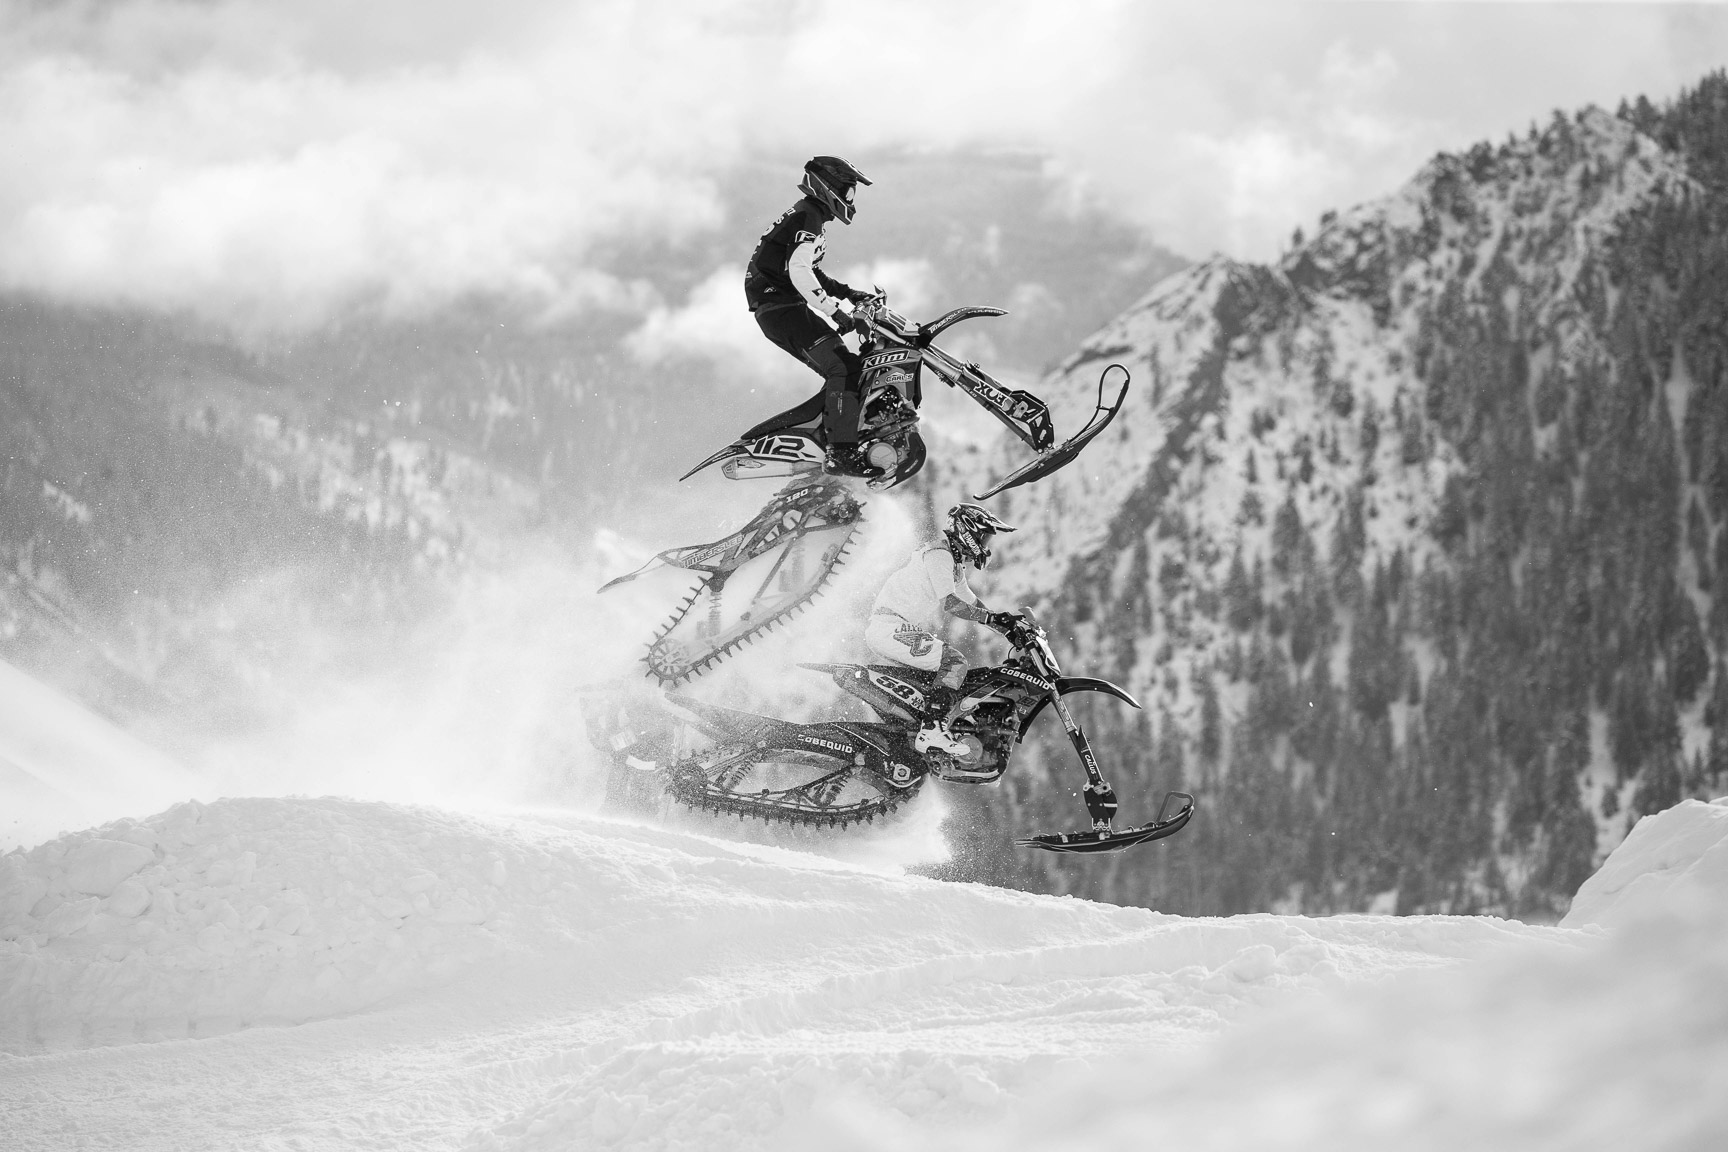 Mitch Cooke and Justin Thomas, Snow BikeCross